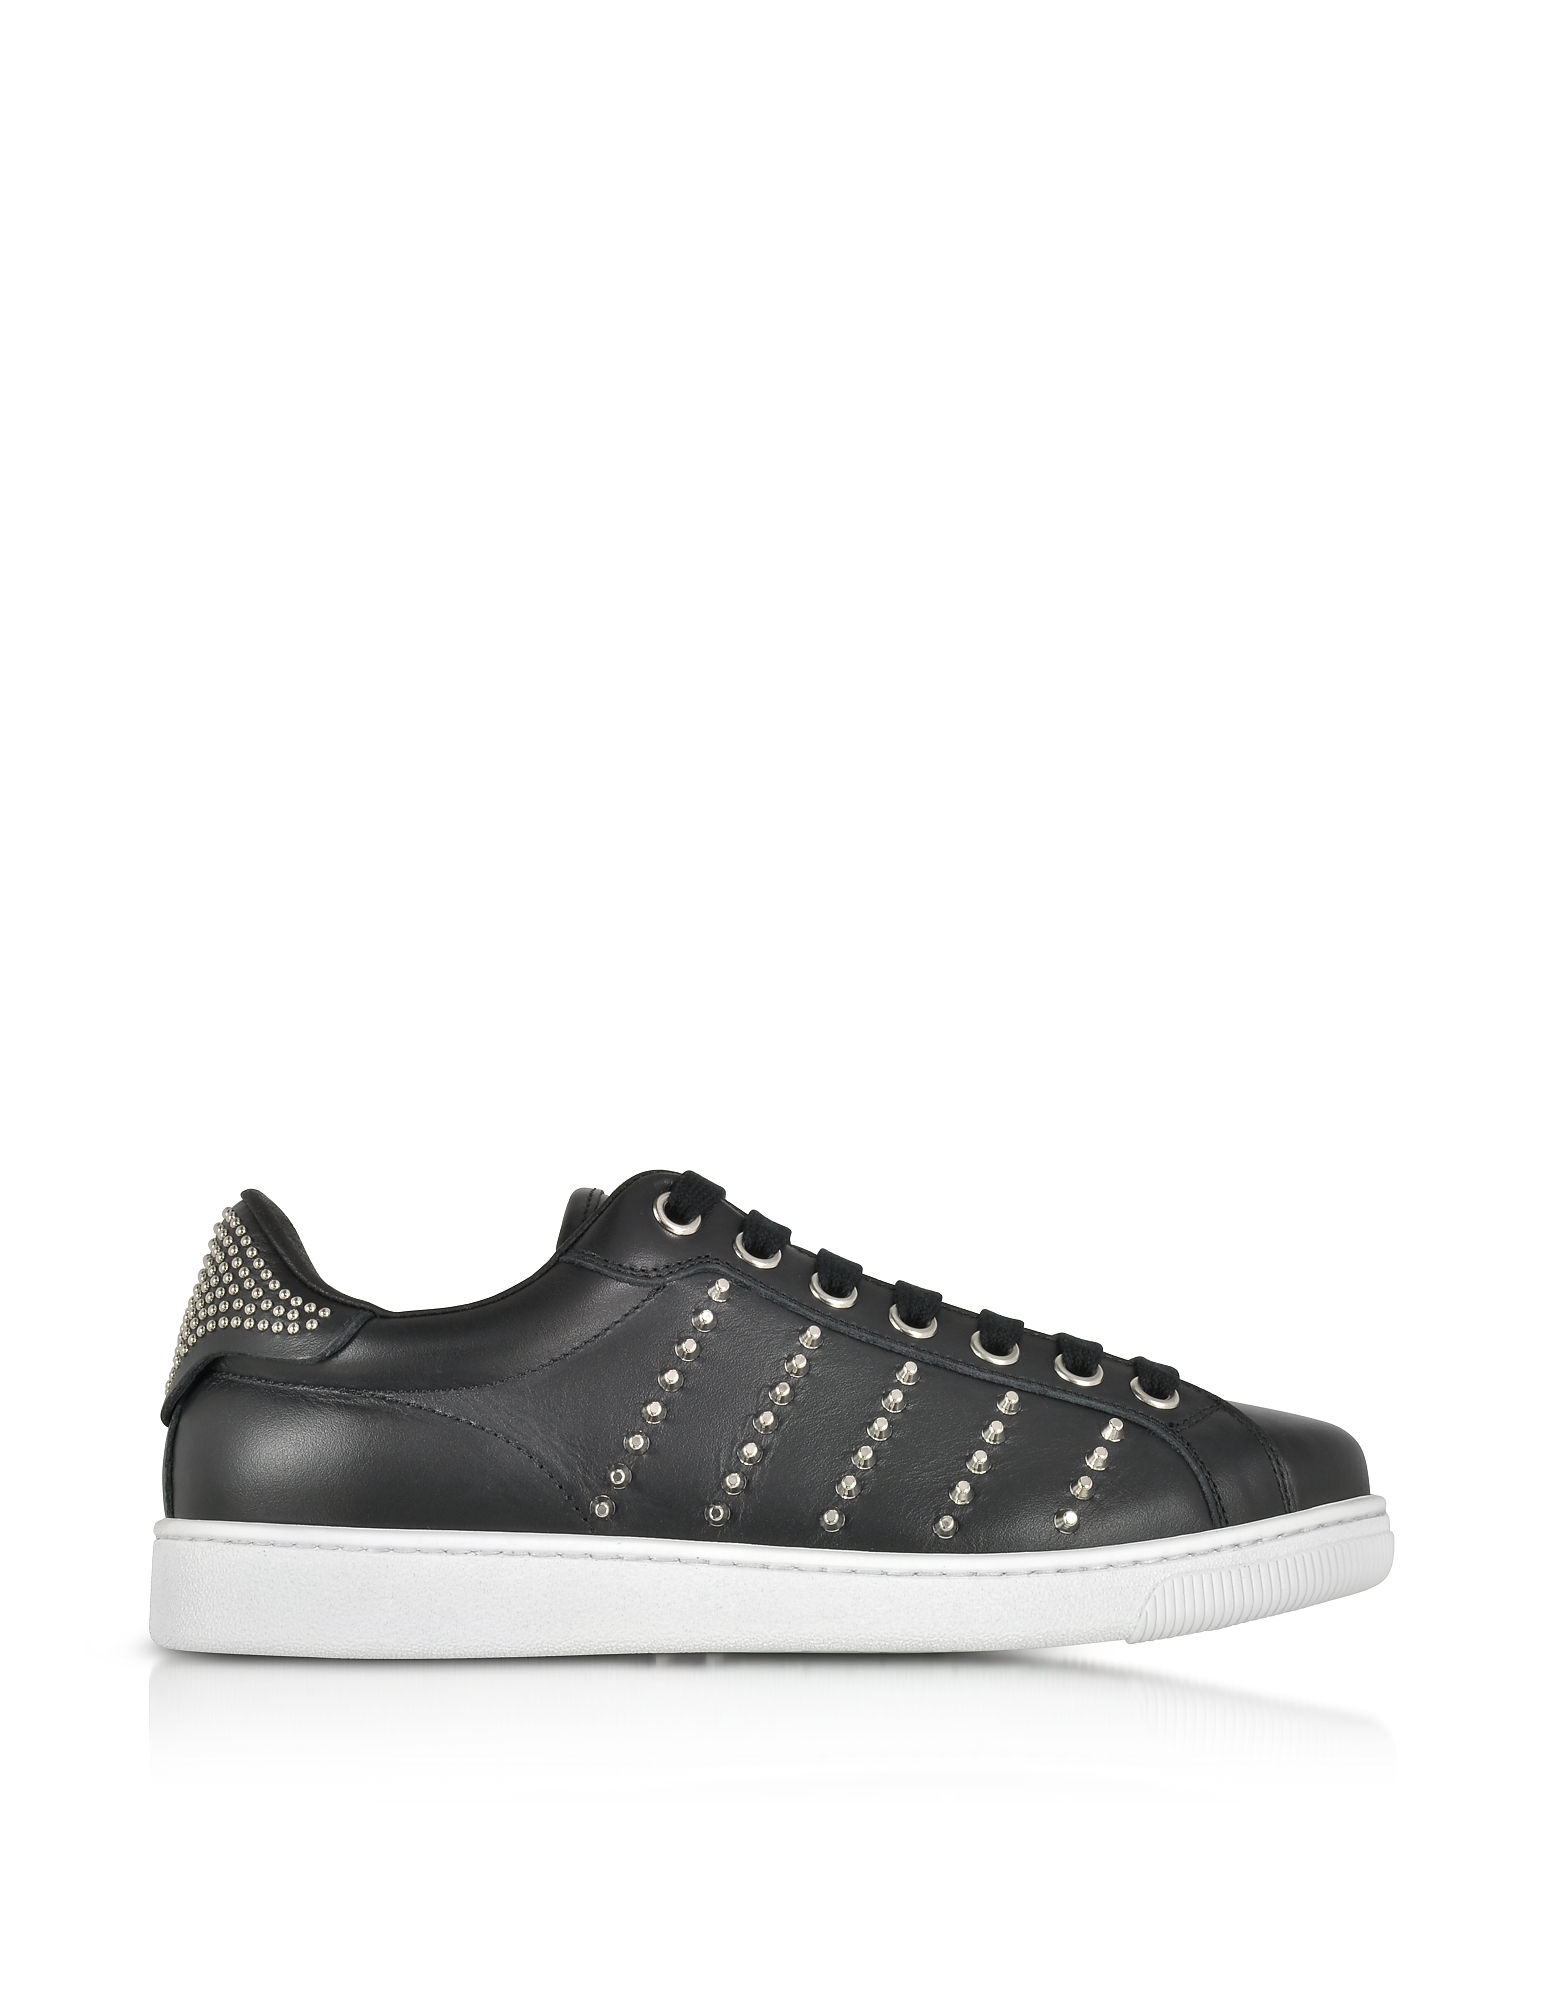 DSquared2 Shoes, Black Leather Men's Sneakers w/Studs